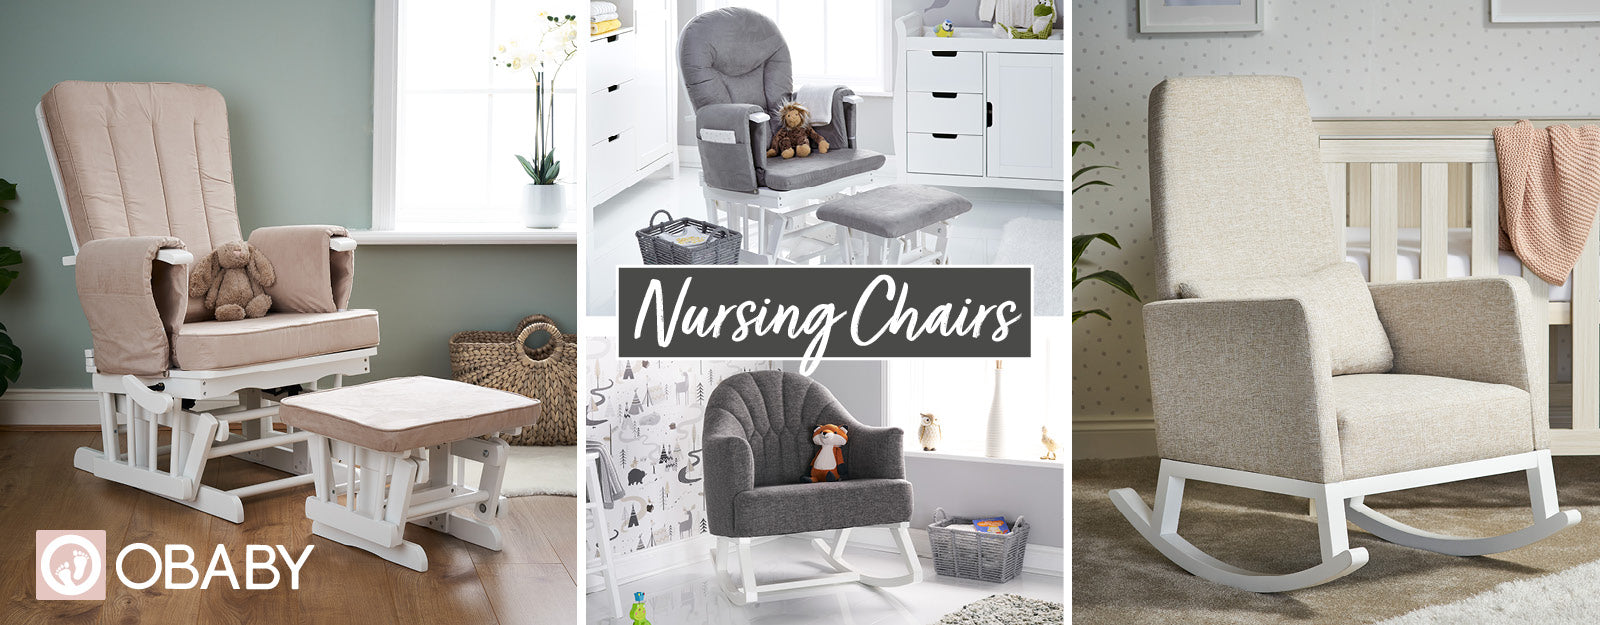 Obaby Nursing Chair Collection